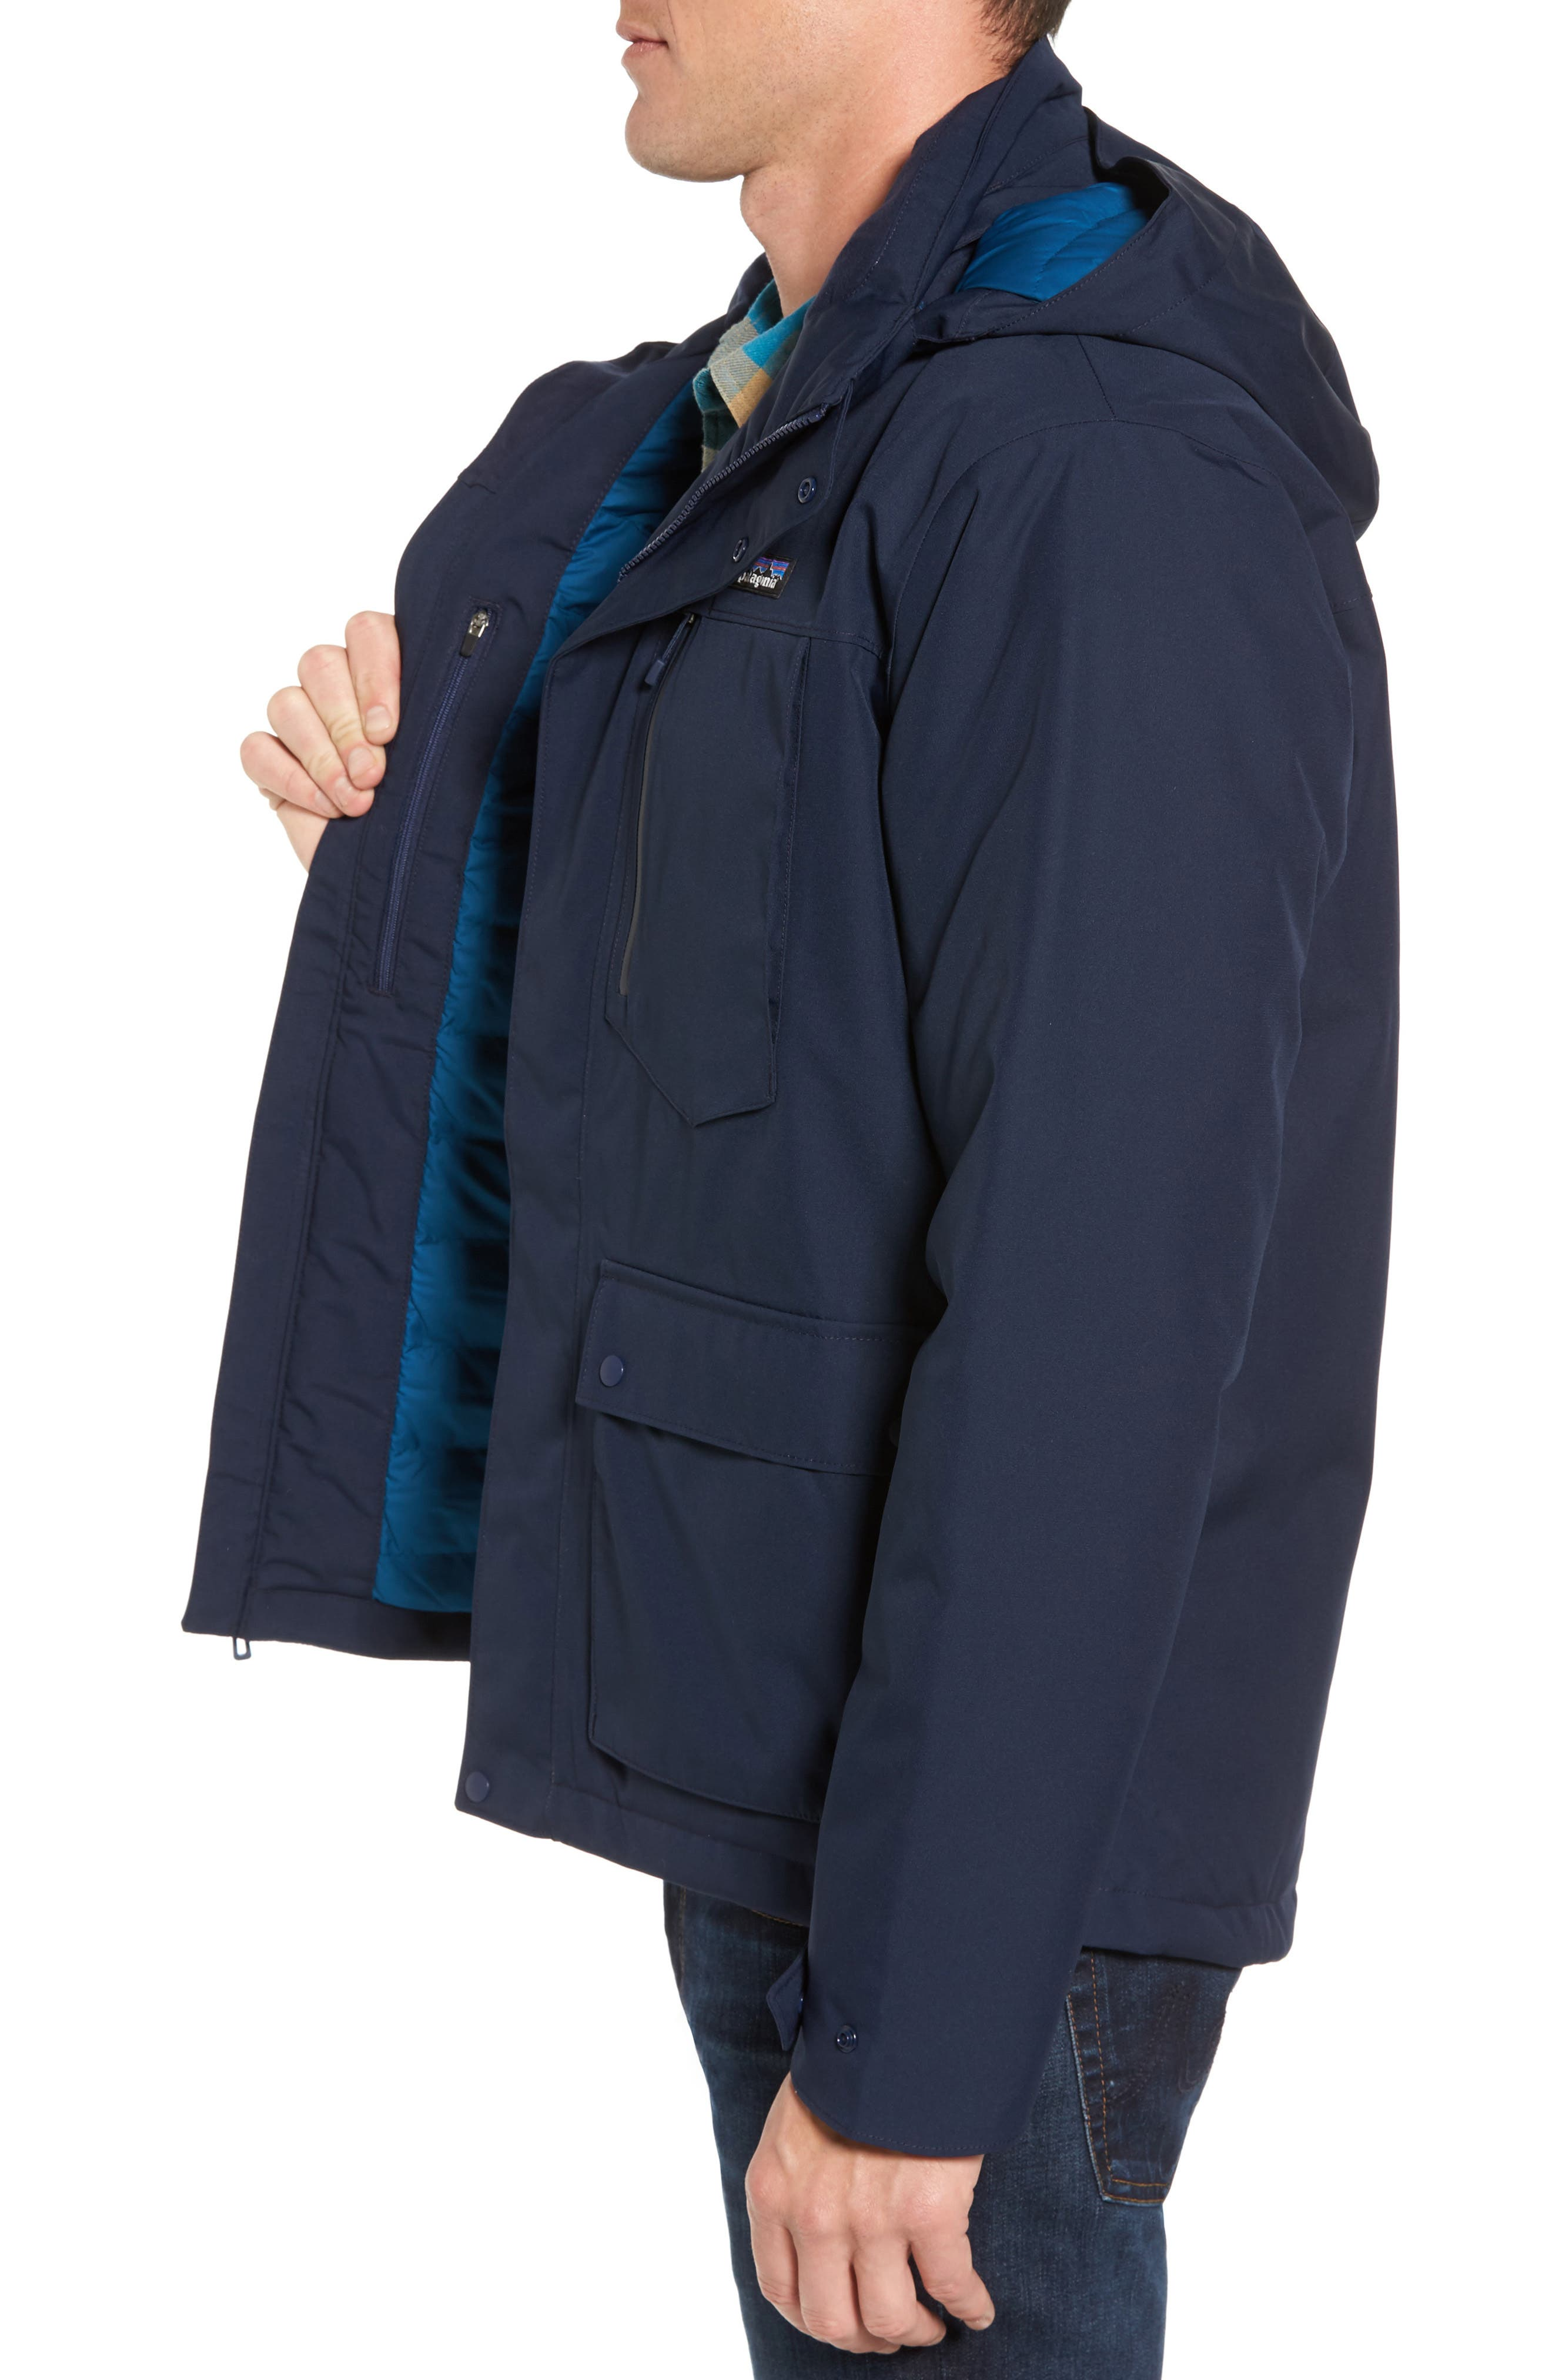 Topley Waterproof Jacket,                             Alternate thumbnail 3, color,                             Navy Blue